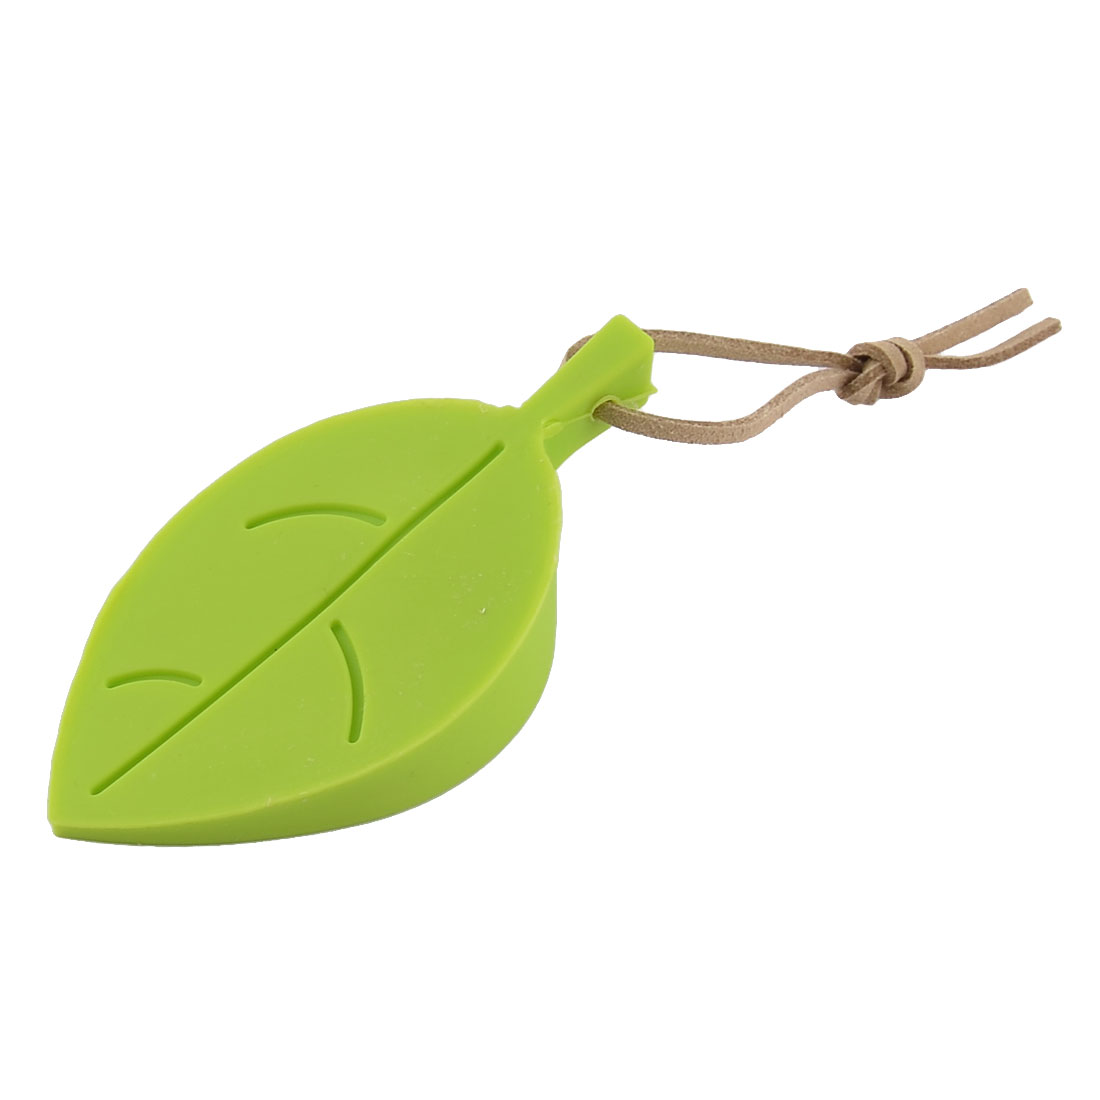 Home Office Leaf Style Flexible Silicone Wedge Finger Protector Door Stopper Green